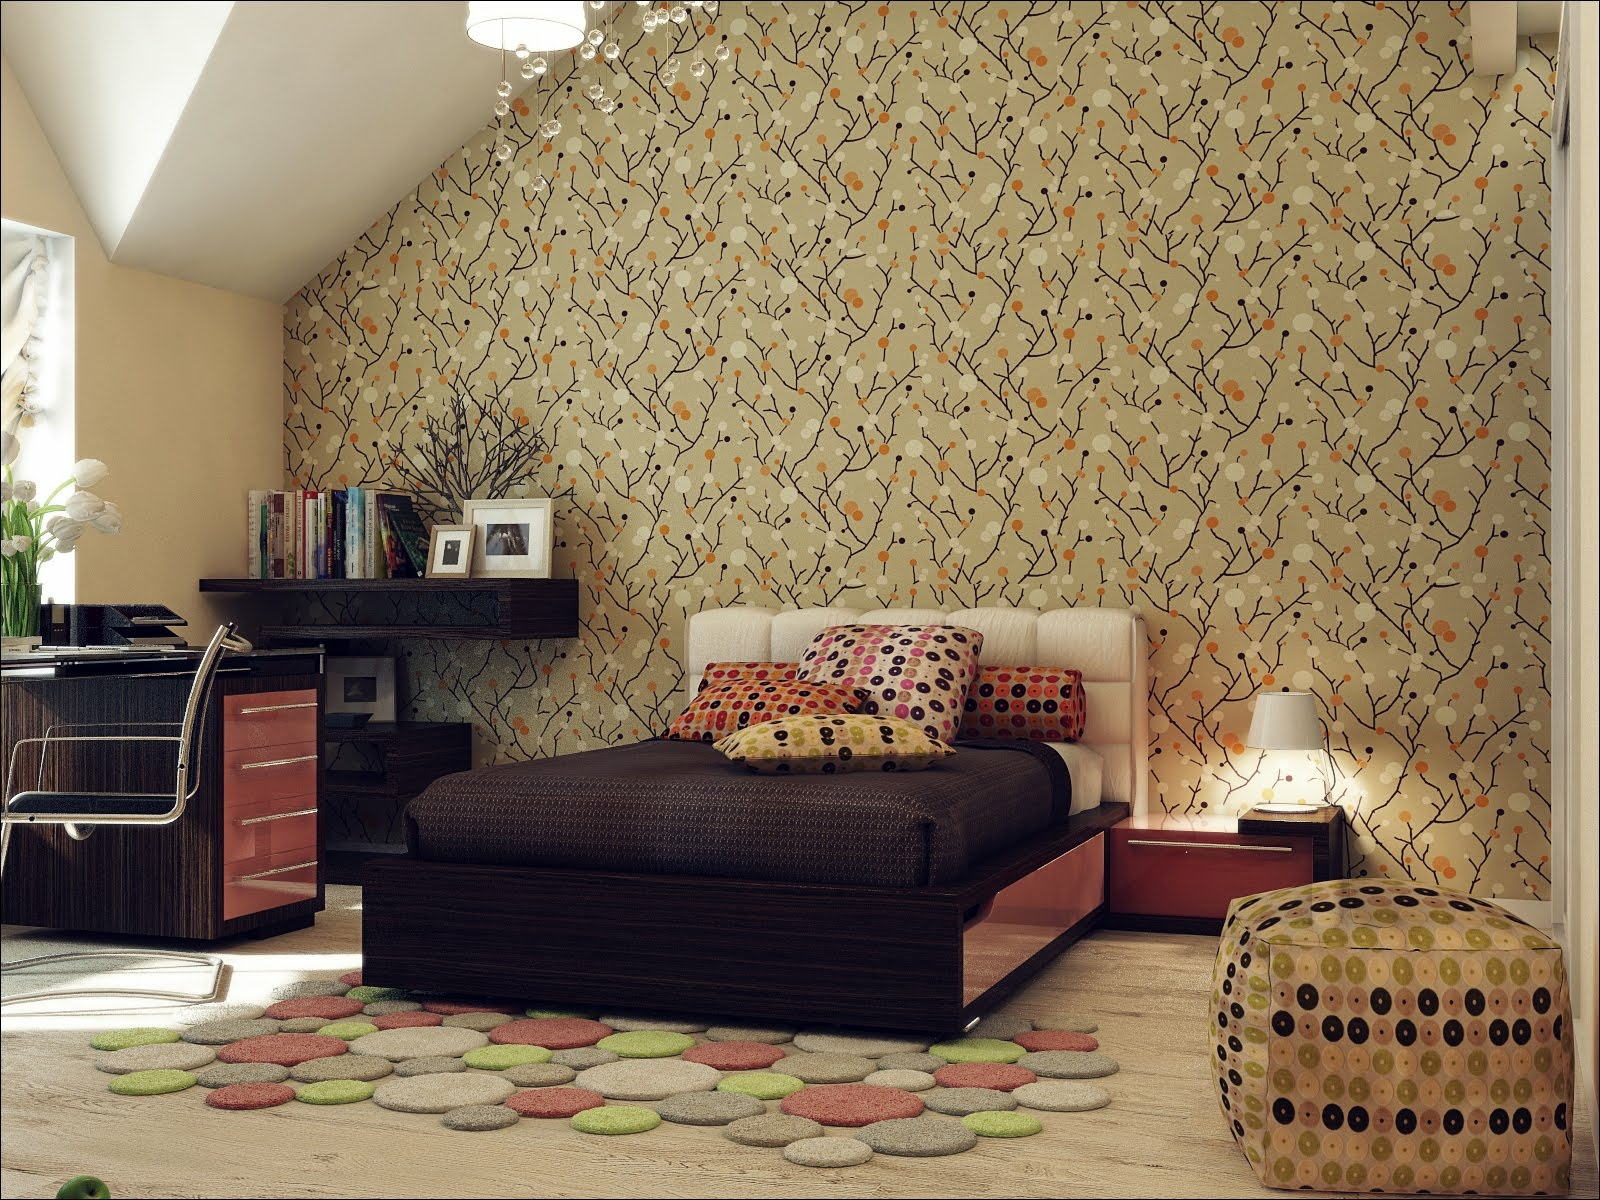 Red black beige bedroom wallpaper interior design ideas for Black bedroom wallpaper designs